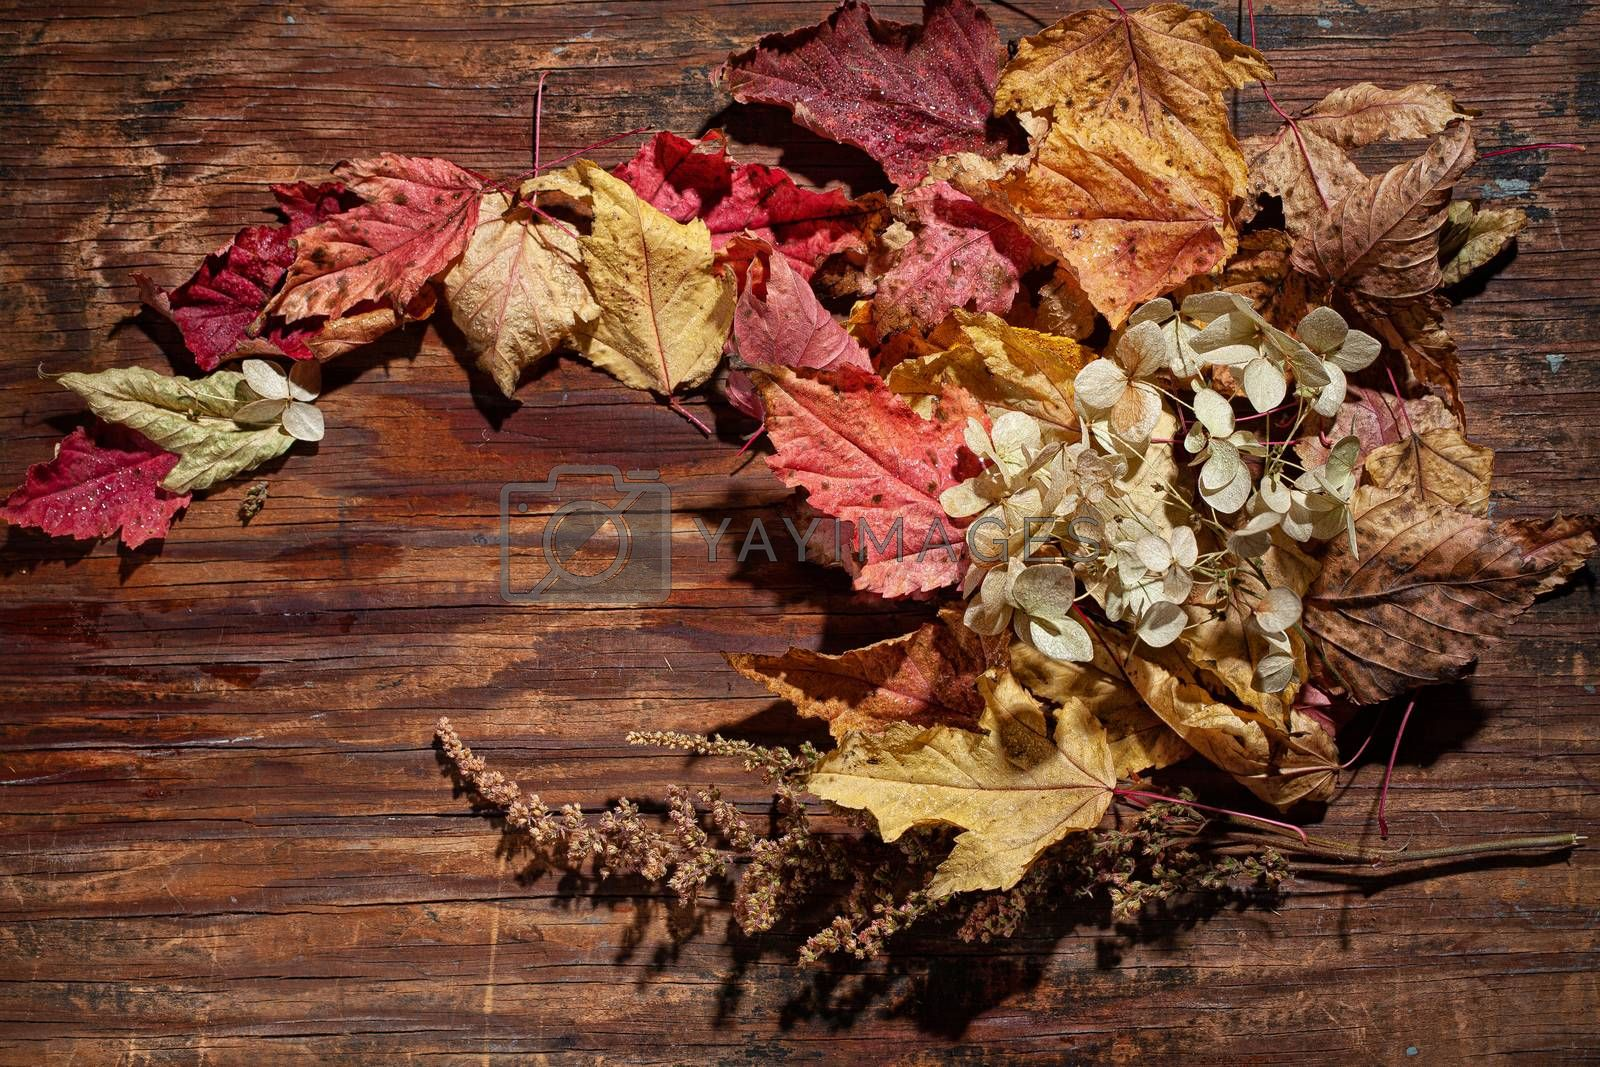 Dry leaves and flowers on a textured background